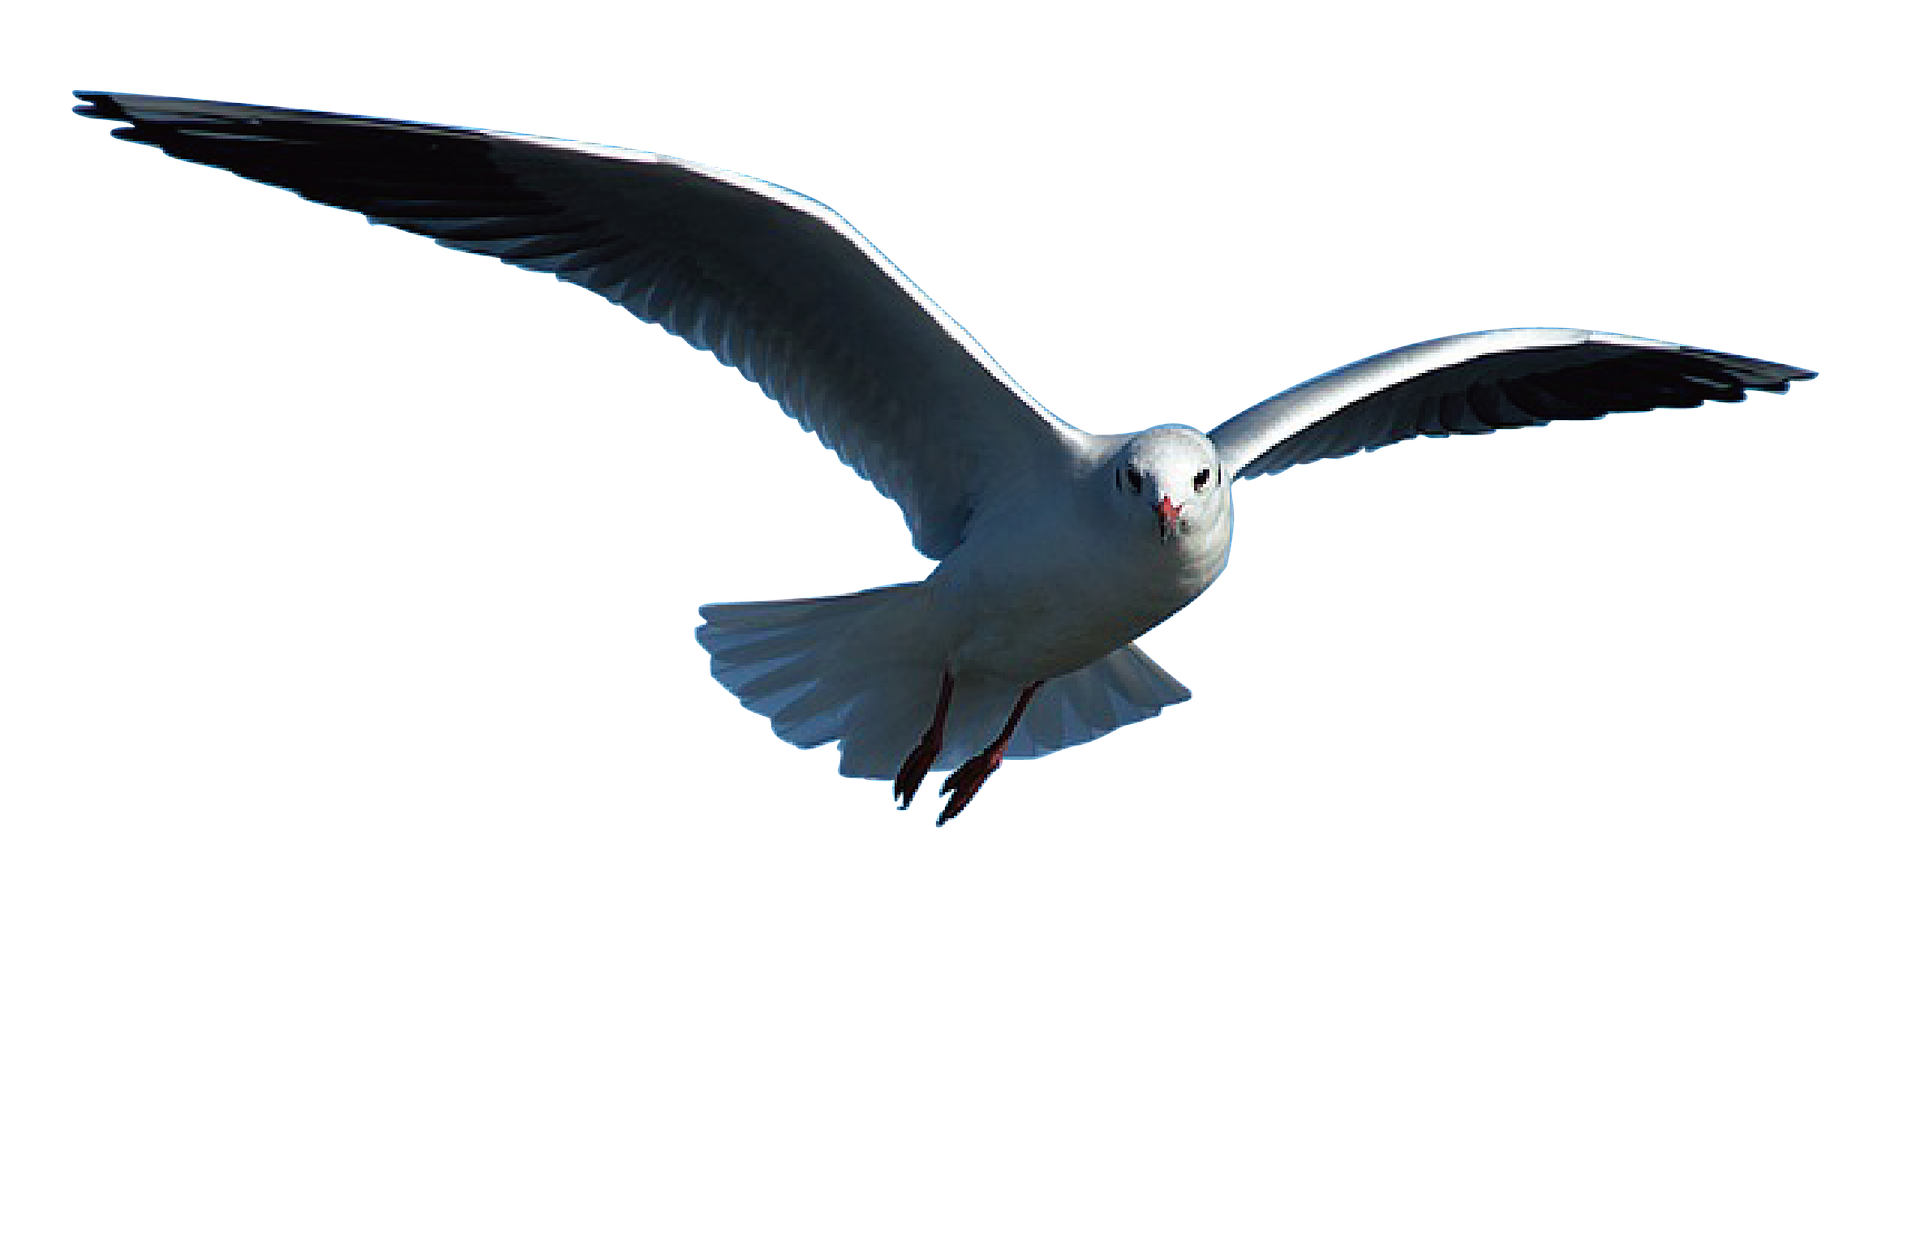 seagull-1643082_1920.png